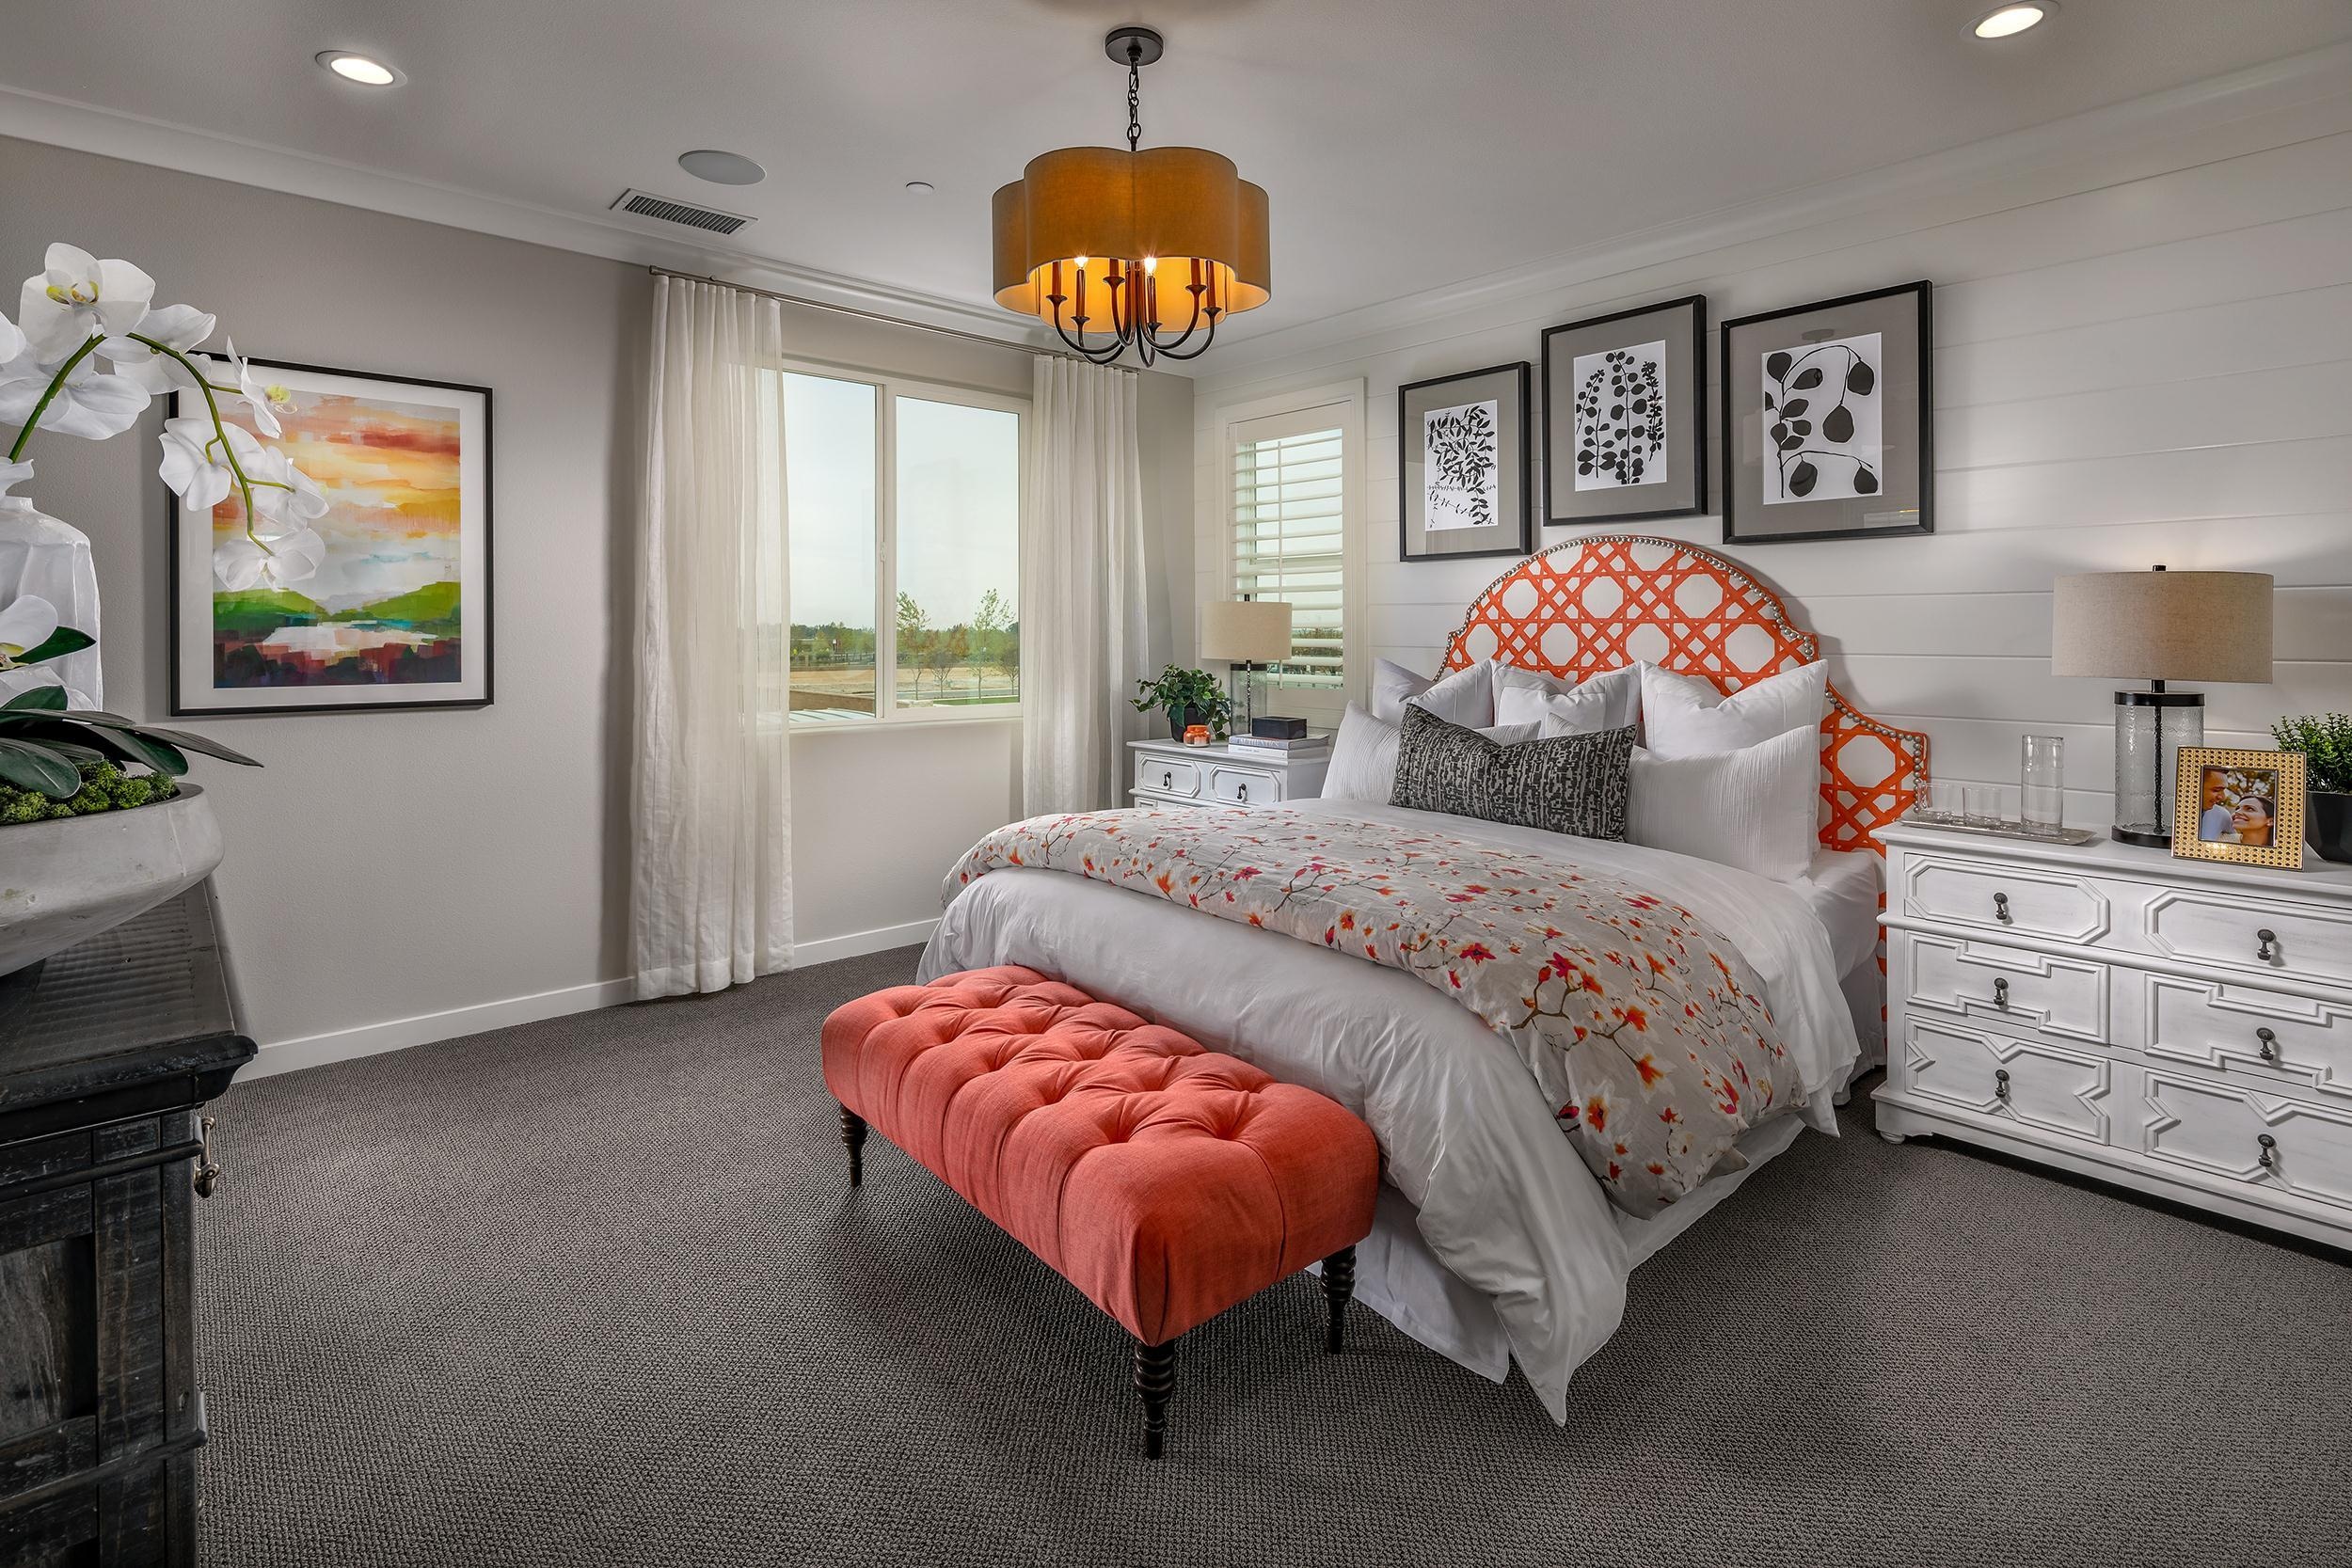 Bedroom featured in the Katelyn By McCaffrey Homes in Fresno, CA